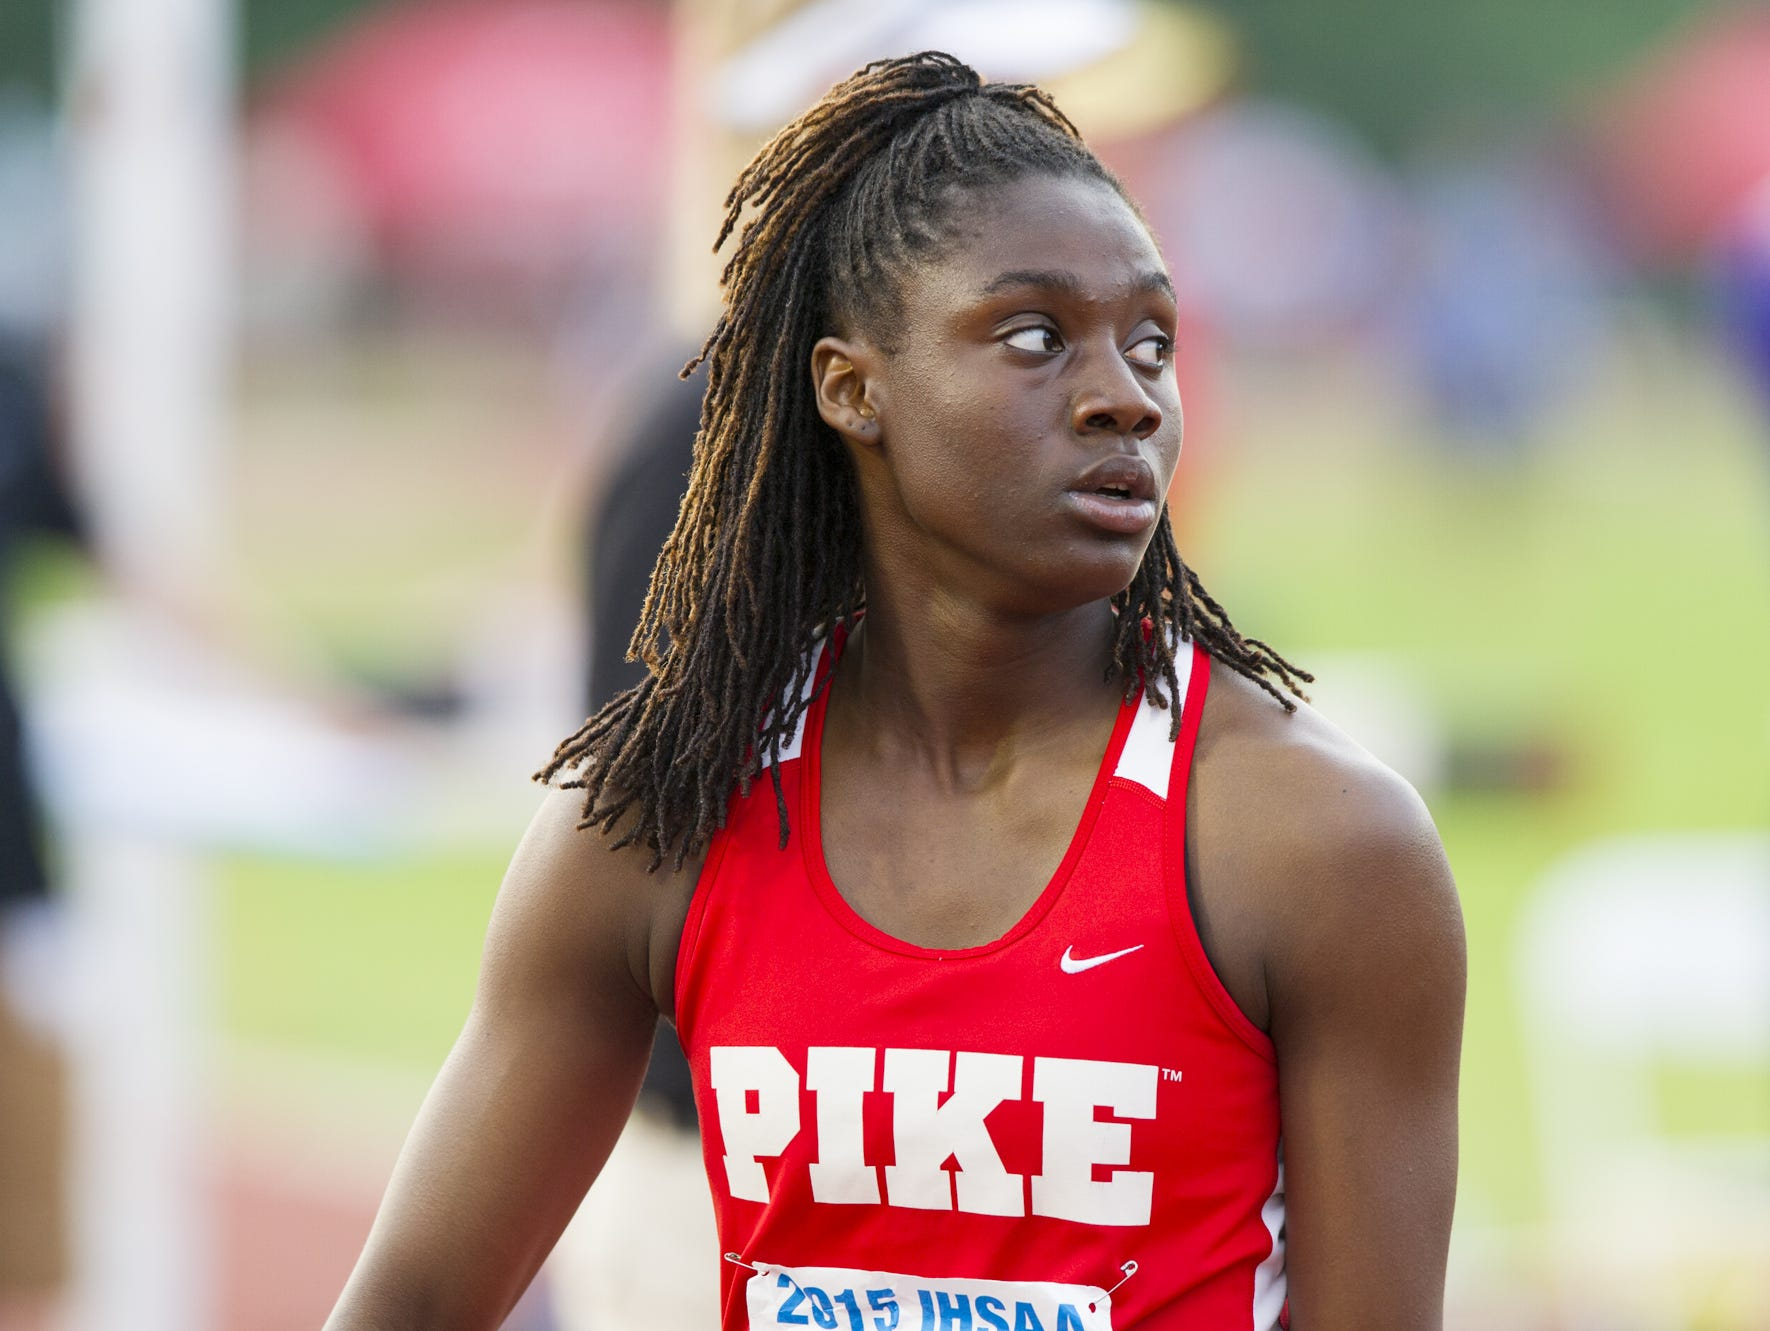 Pike High School sophomore Lynna Irby (647) looks at her time on the scoreboard after winning the 200 Meter Dash at the 42nd annual Indiana High School Athletic Association's girls track and field state finals June 6, 2015, at the Robert C. Haugh Track and Field Complex on the Indiana University campus in Bloomington.